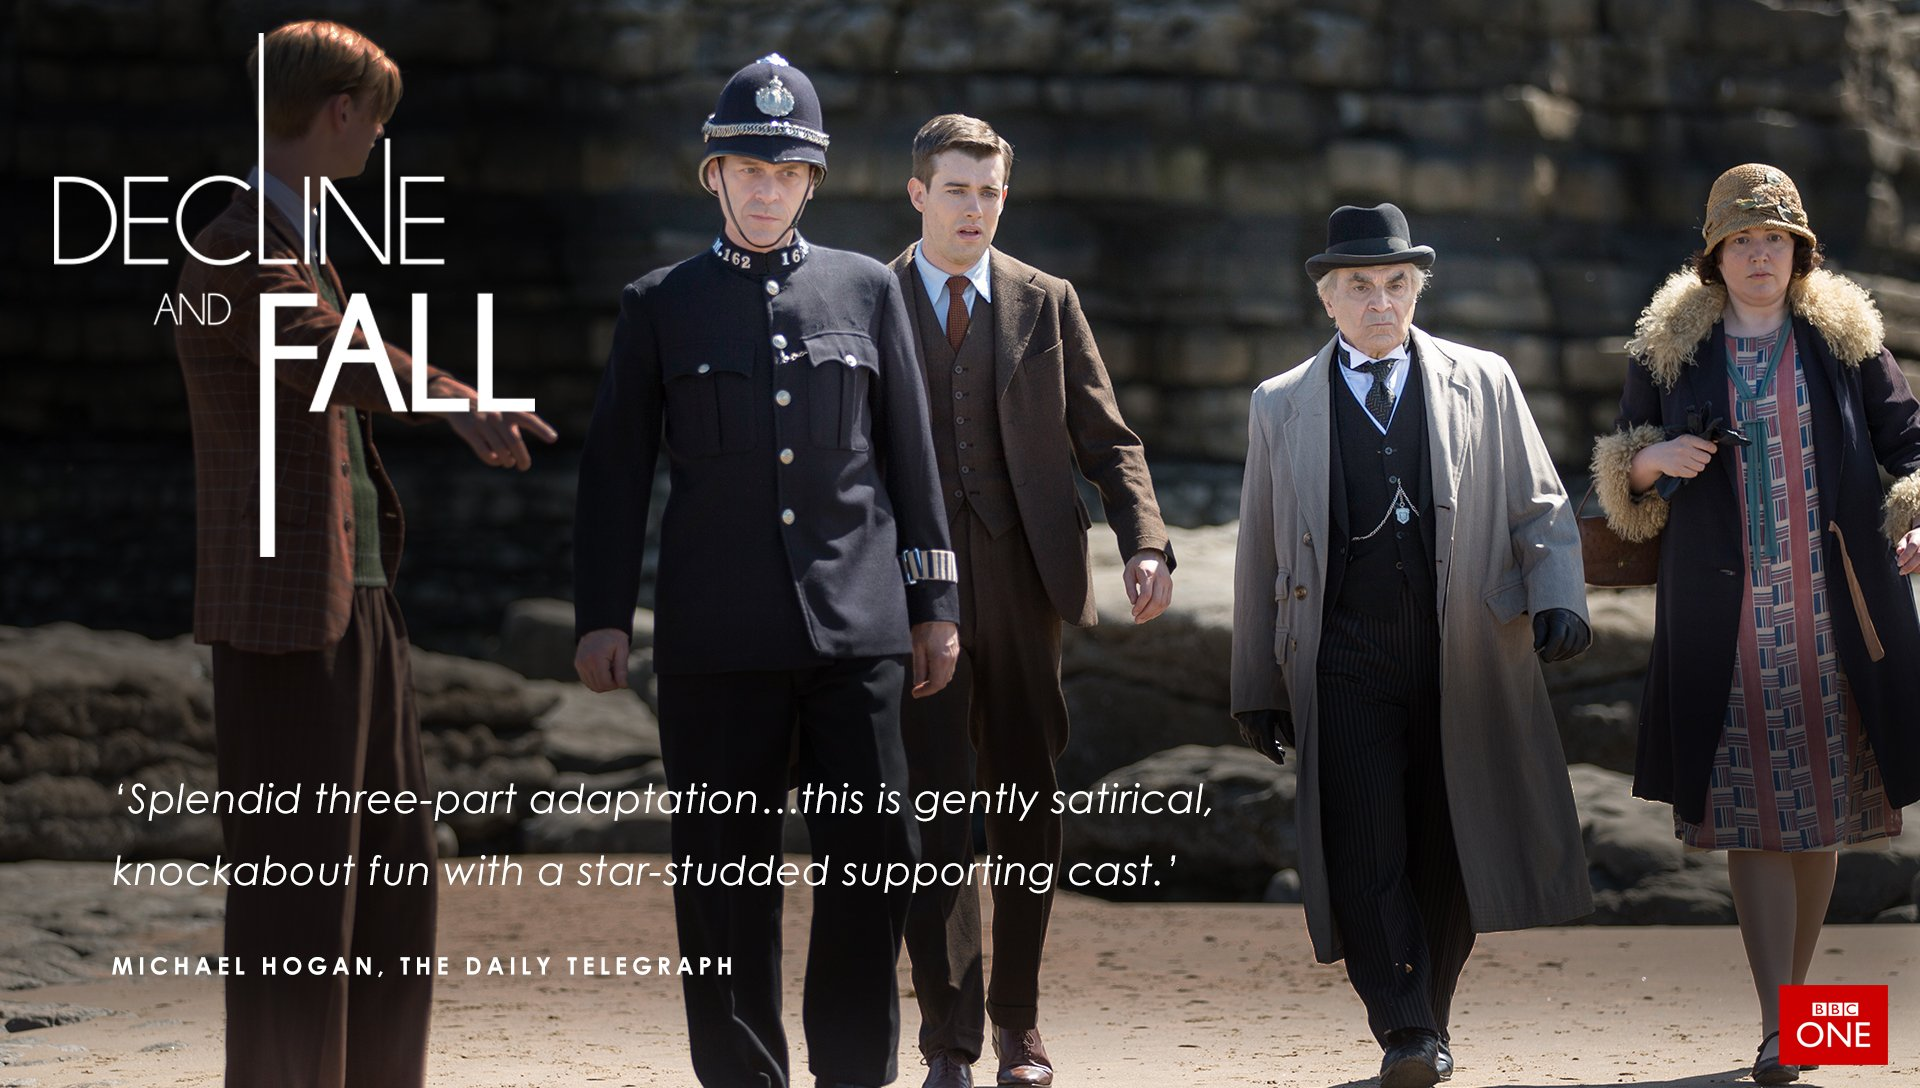 Just 20 minutes to go until #declineandfall. Episode 2 starts at 9pm on @BBCOne! https://t.co/ObcCwgqJpR